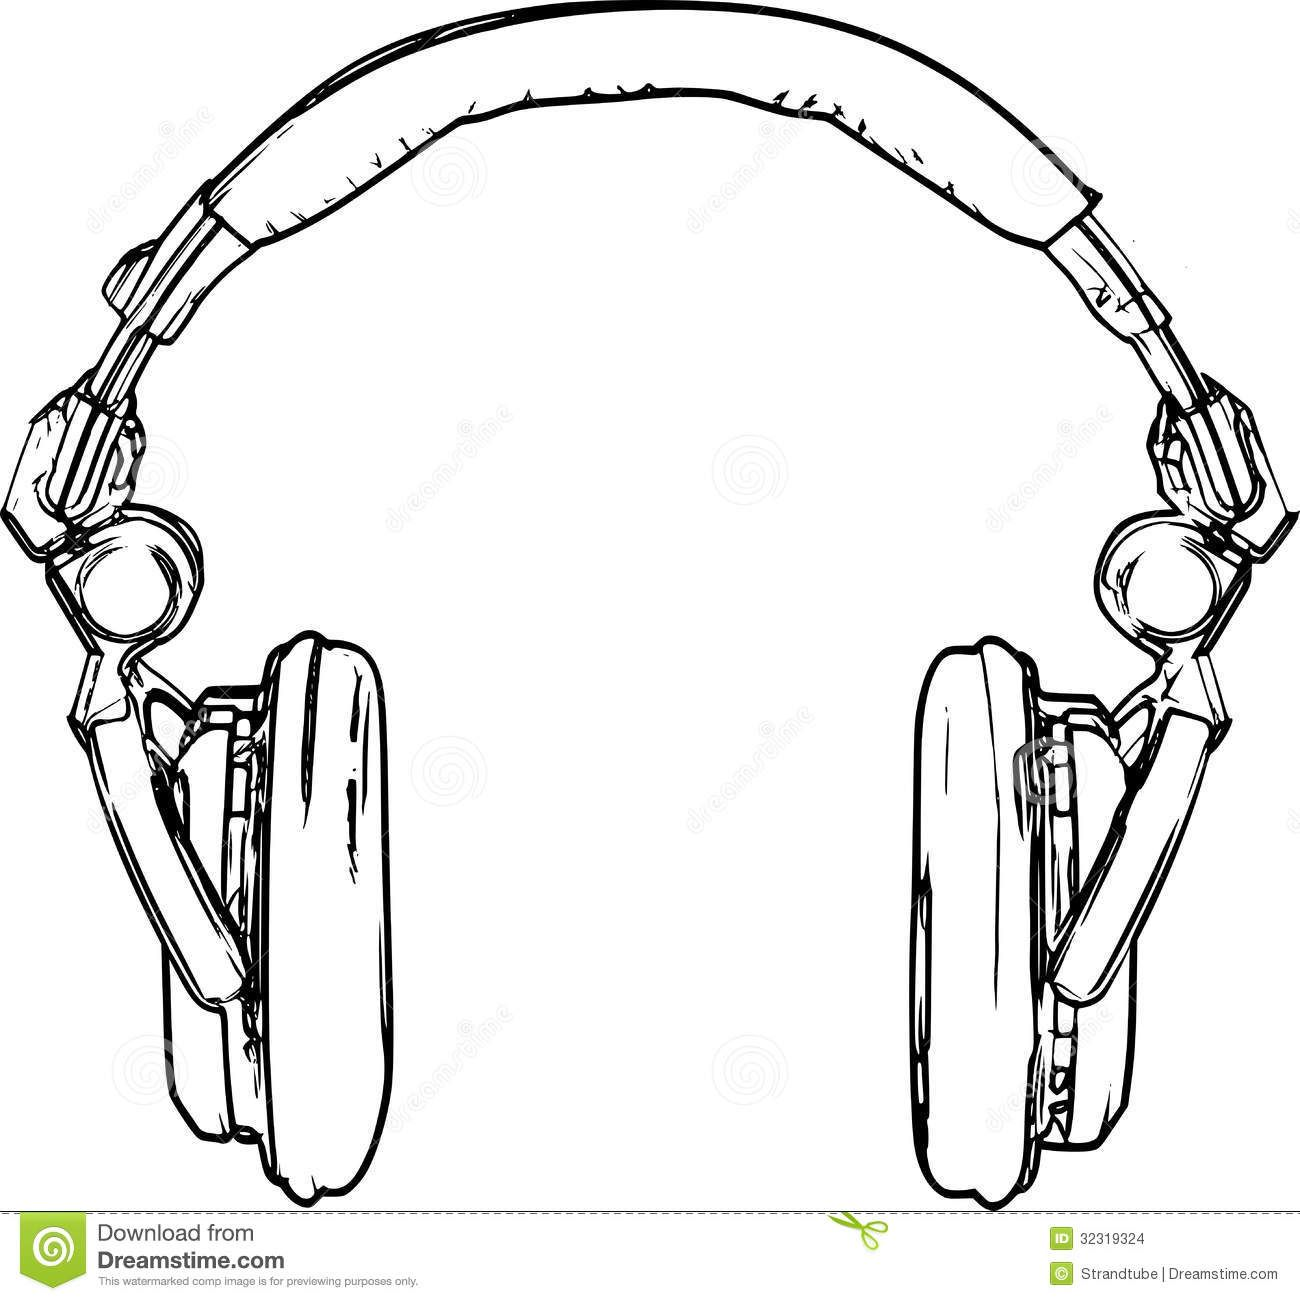 Headphone clipart drawn Tail Image Emilie Gerard One